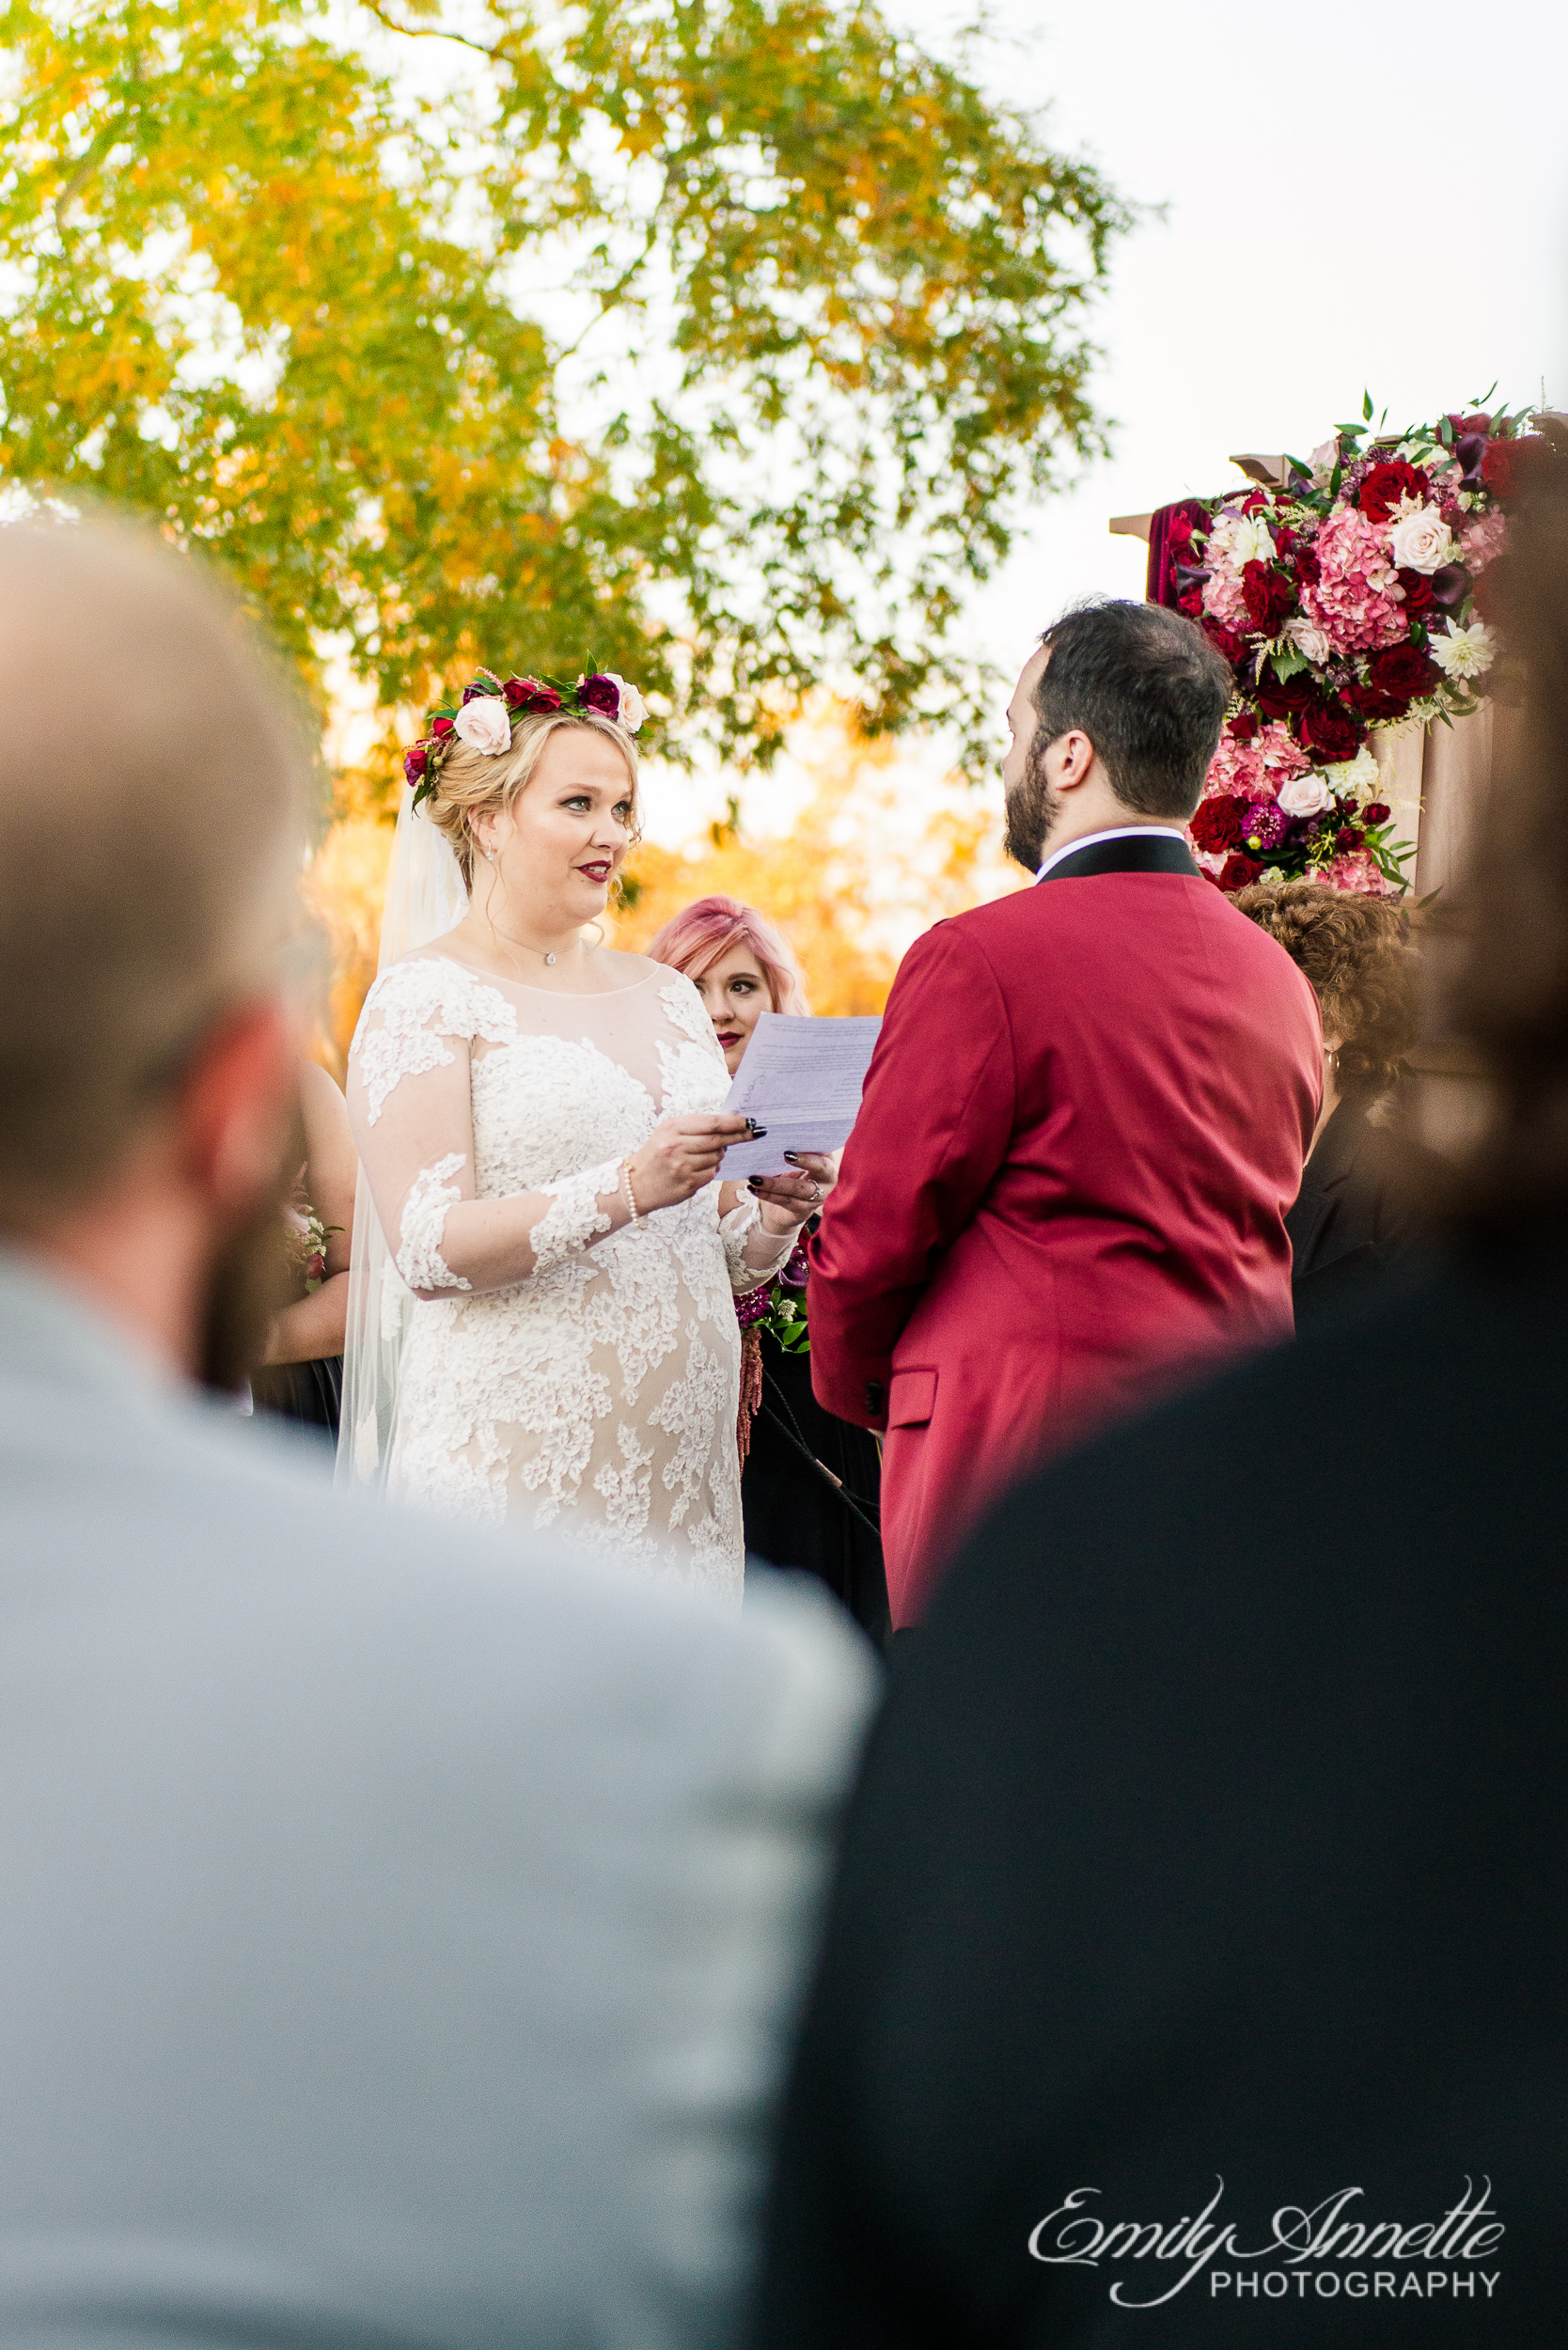 View over the shoulders of guests of a bride reading her vows to her groom at the altar during an outdoor wedding ceremony at Willow Oaks Country Club in Richmond, Virginia